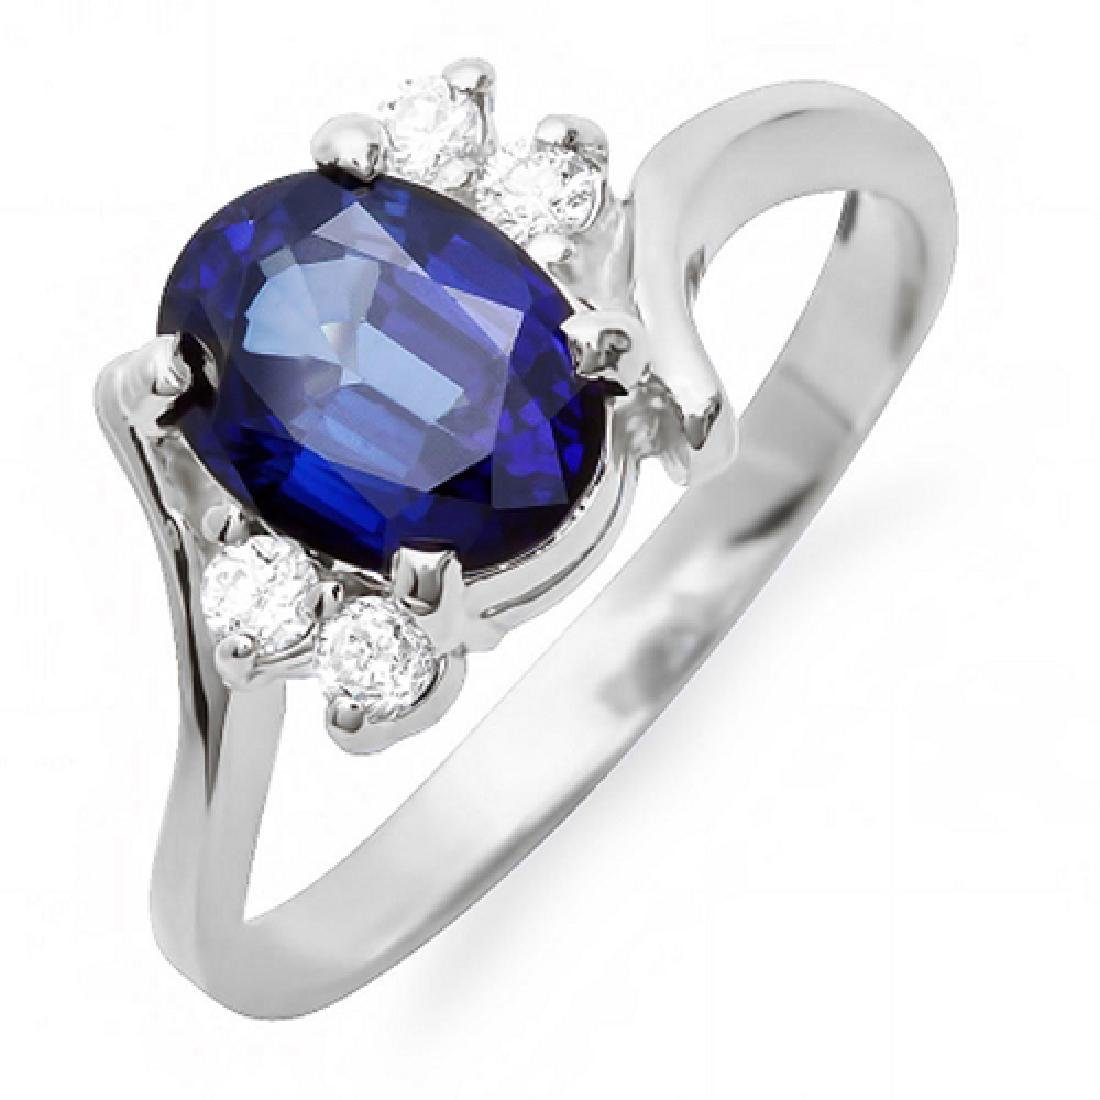 2.10 Carat Natural Sapphire 18K Solid White Gold